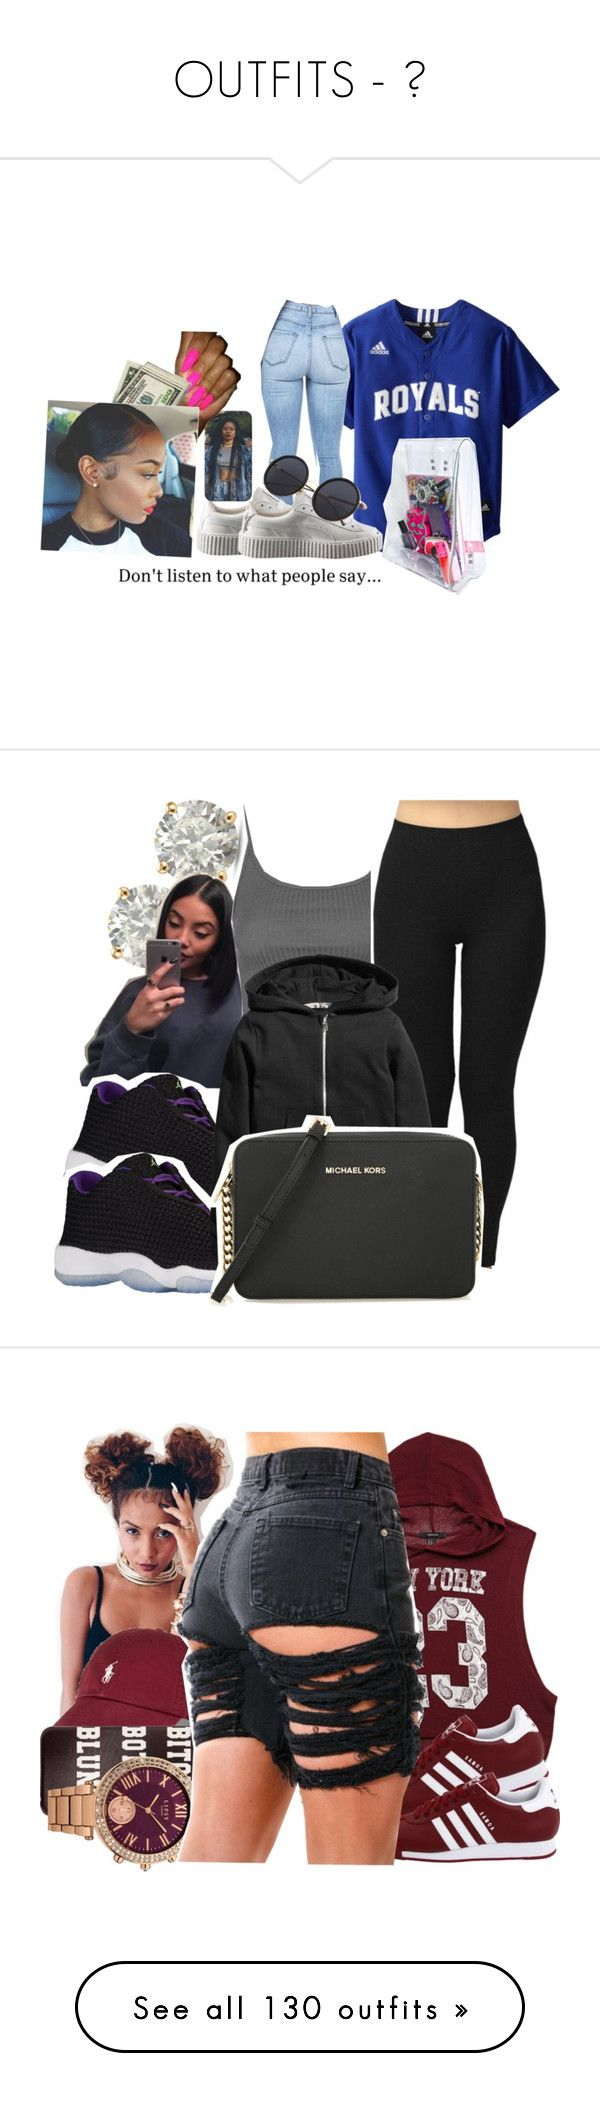 """OUTFITS - "" by queenamira ❤ liked on Polyvore featuring Puma, American Apparel, Auriya, Topshop, MICHAEL Michael Kors, Forever 21, Lipsy, adidas Originals, Pluma and Markus Lupfer"